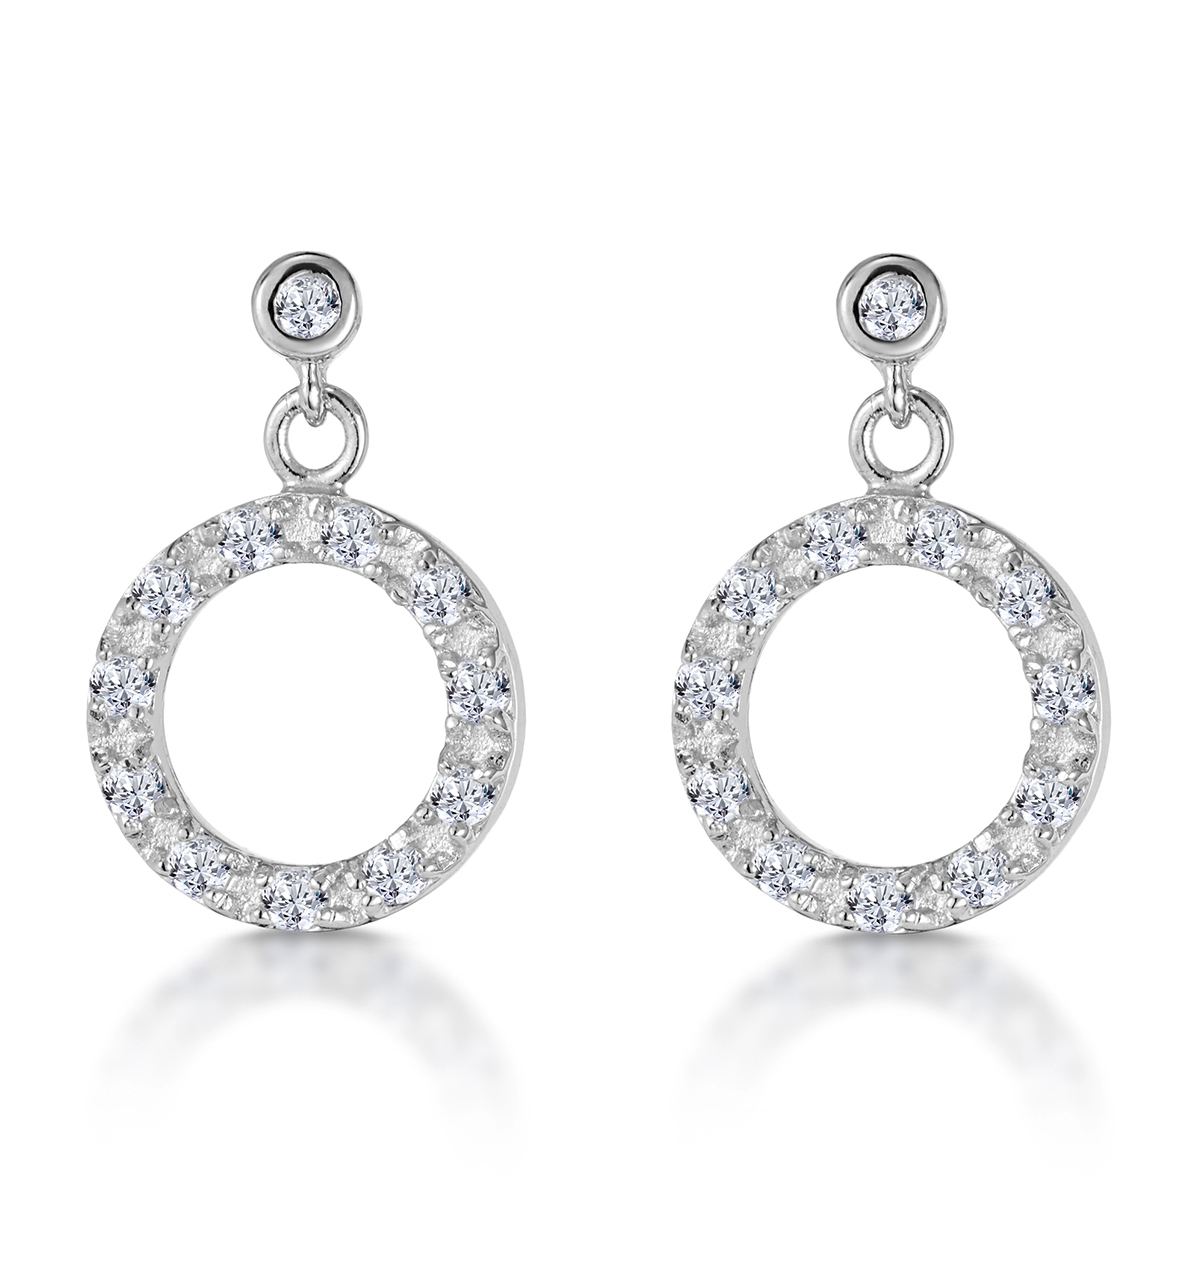 CIRCLE OF LIFE SILVER EARRINGS WITH WHITE TOPAZ - TESORO COLLECTION